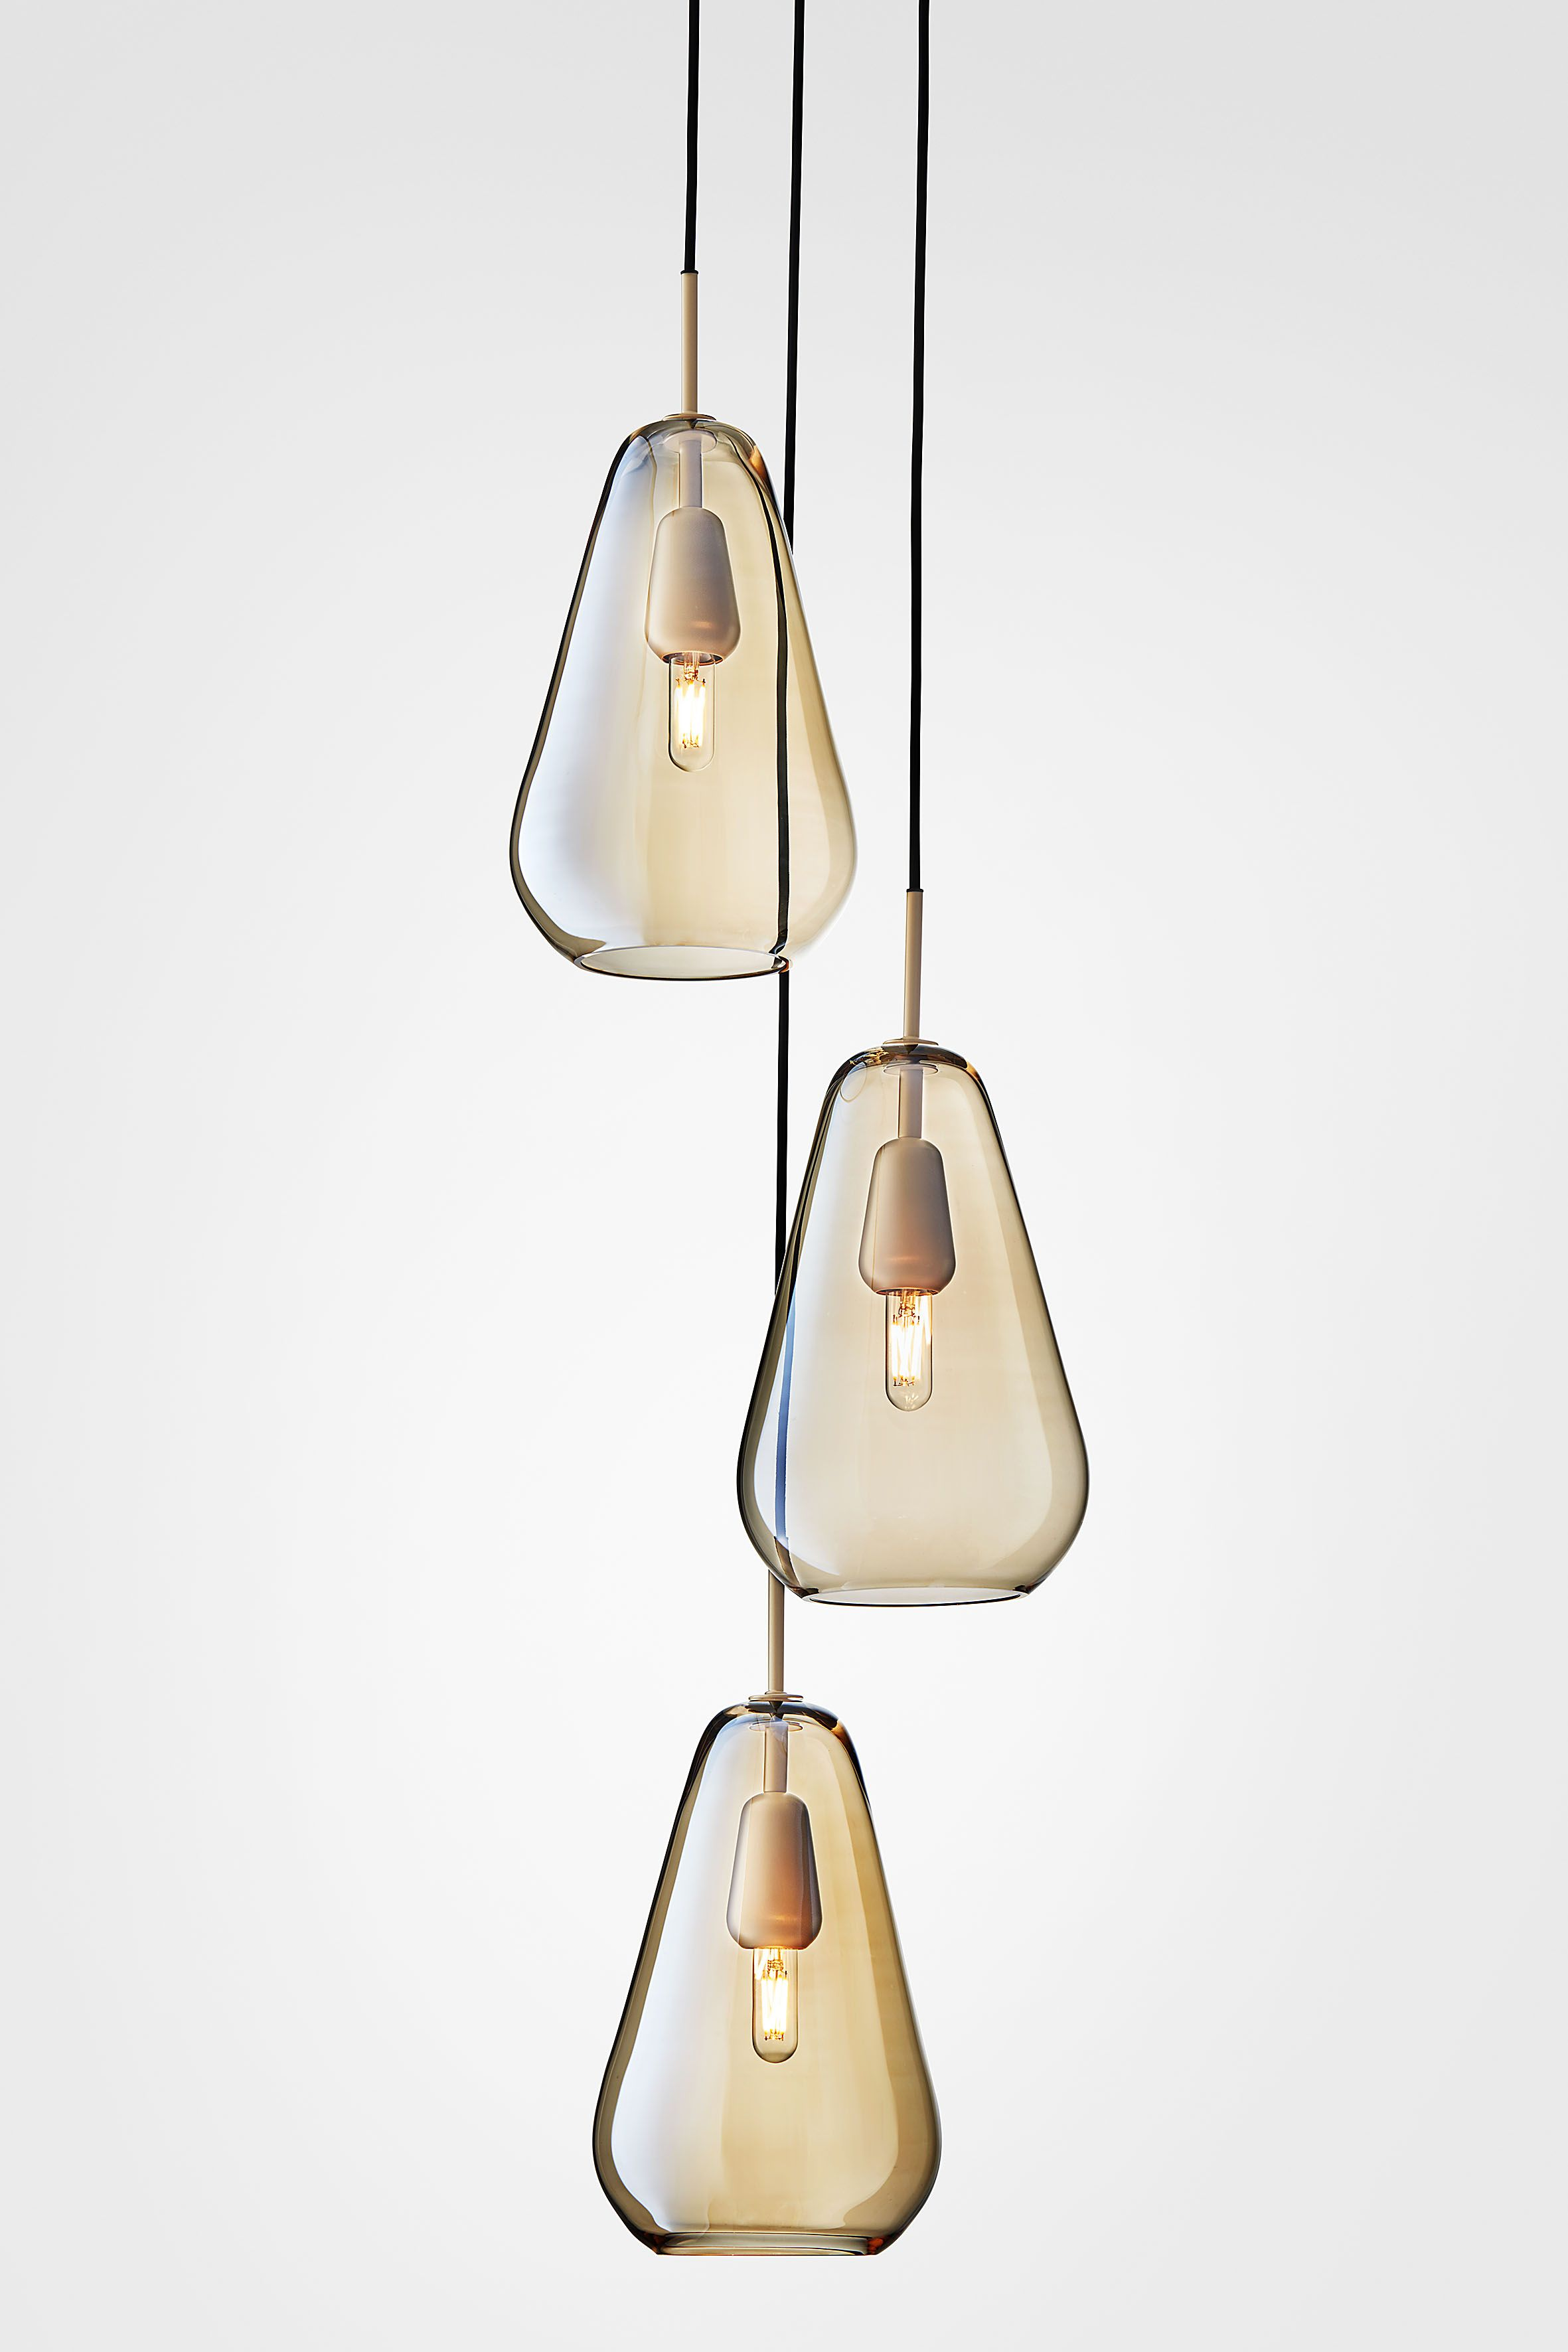 Anoli 3 By Nuura Elegant Droplets And Golden Warmth Are The